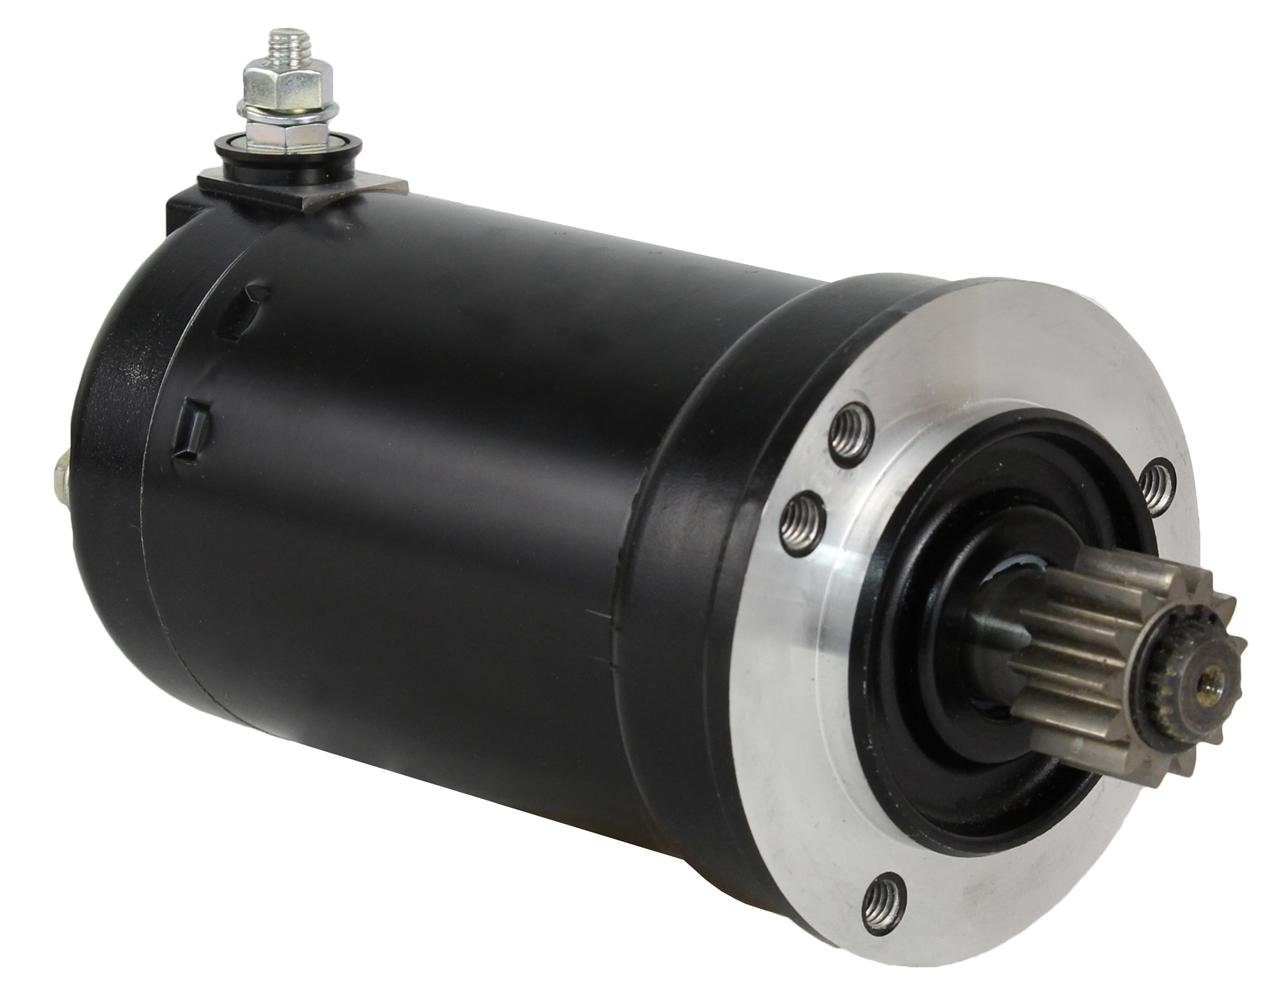 NEW DUCATI MOTORCYCLE STARTER MOTOR FITS SUPERSPORT 750 900 620 800 S SS 128000-6050 270.4.001.1A 27040011A